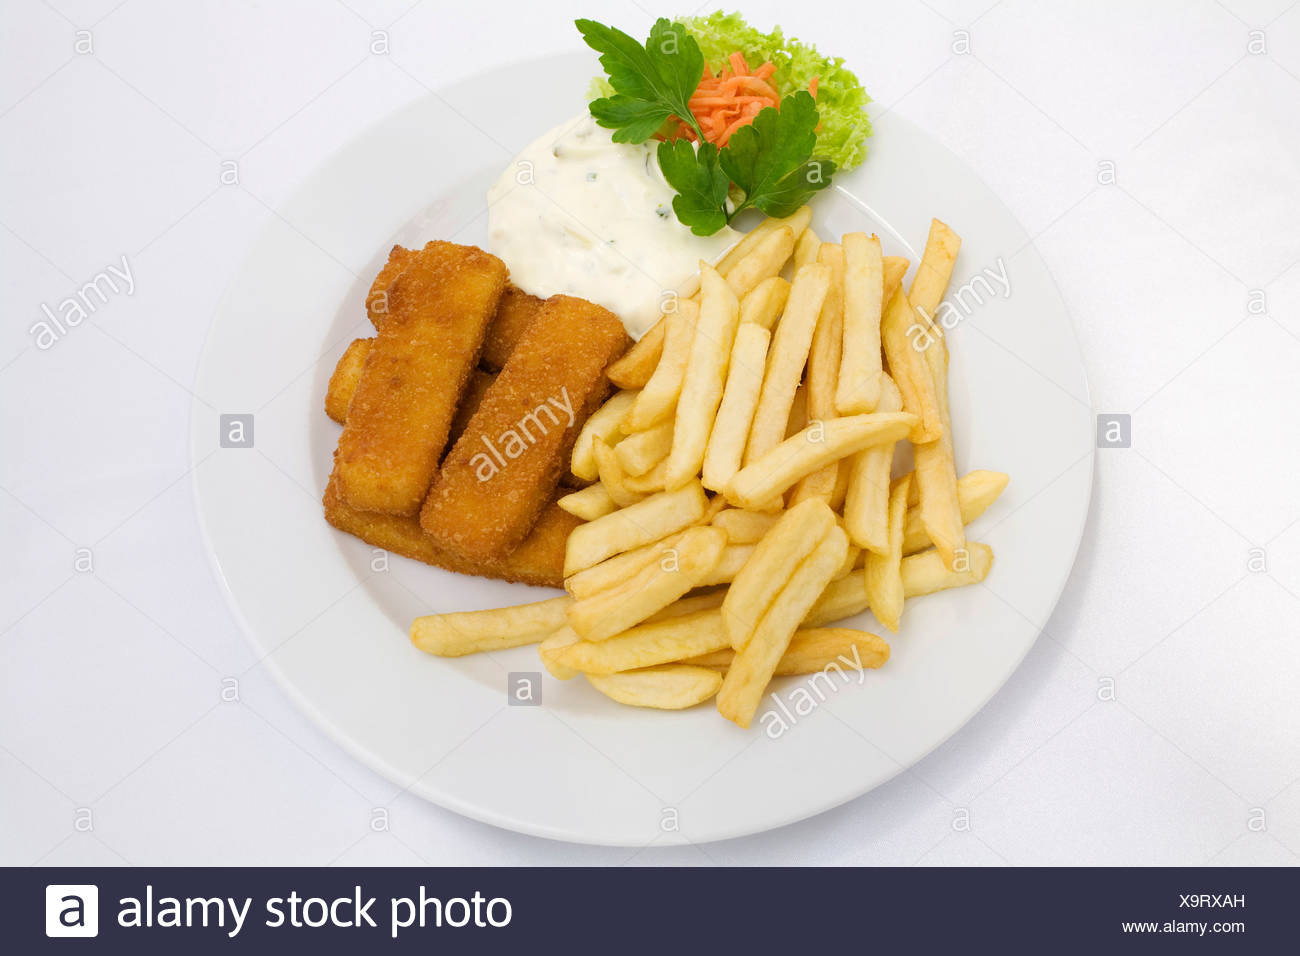 Fish sticks, tartar sauce and french fries served on a white plate - Stock Image